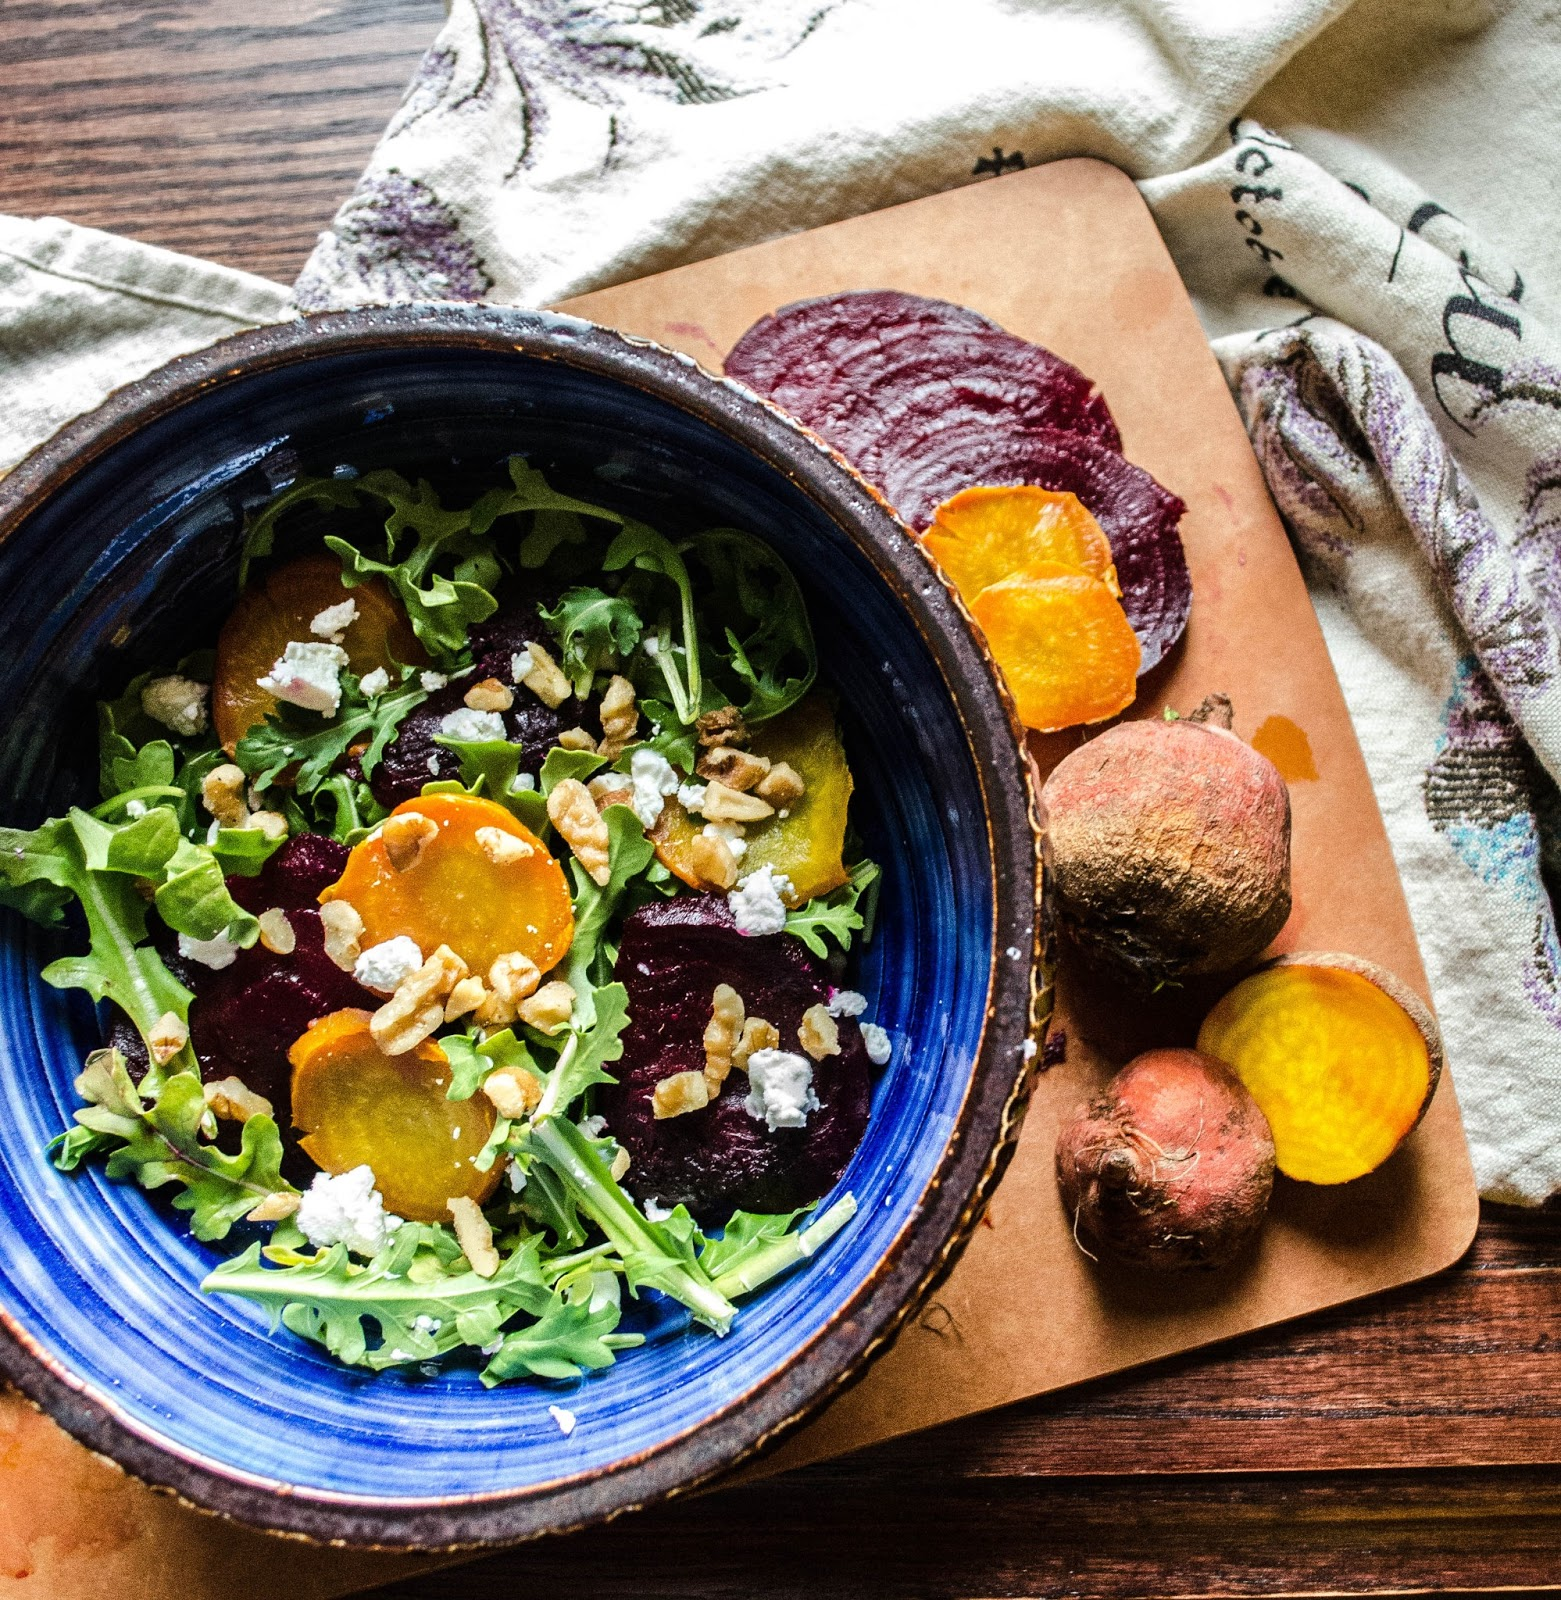 Ça C'est Bon . . .: Roasted Beet Salad with Goat Cheese